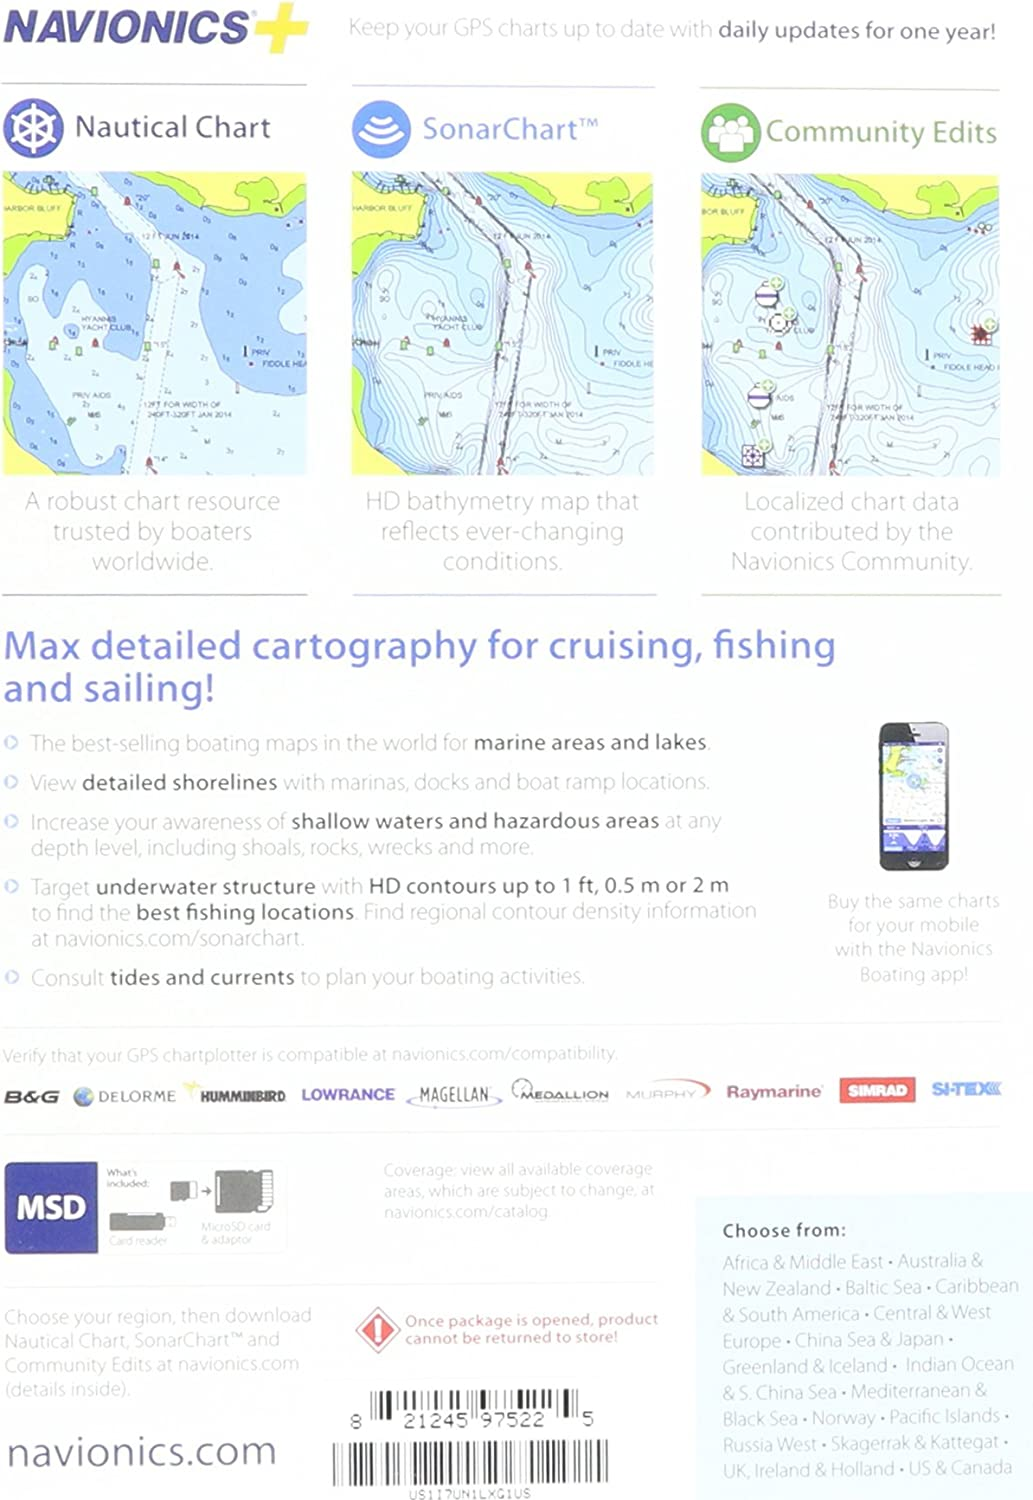 Navionics+ Global Regions Marine and Lake Charts on SD/MSD: Amazon.es: Electrónica